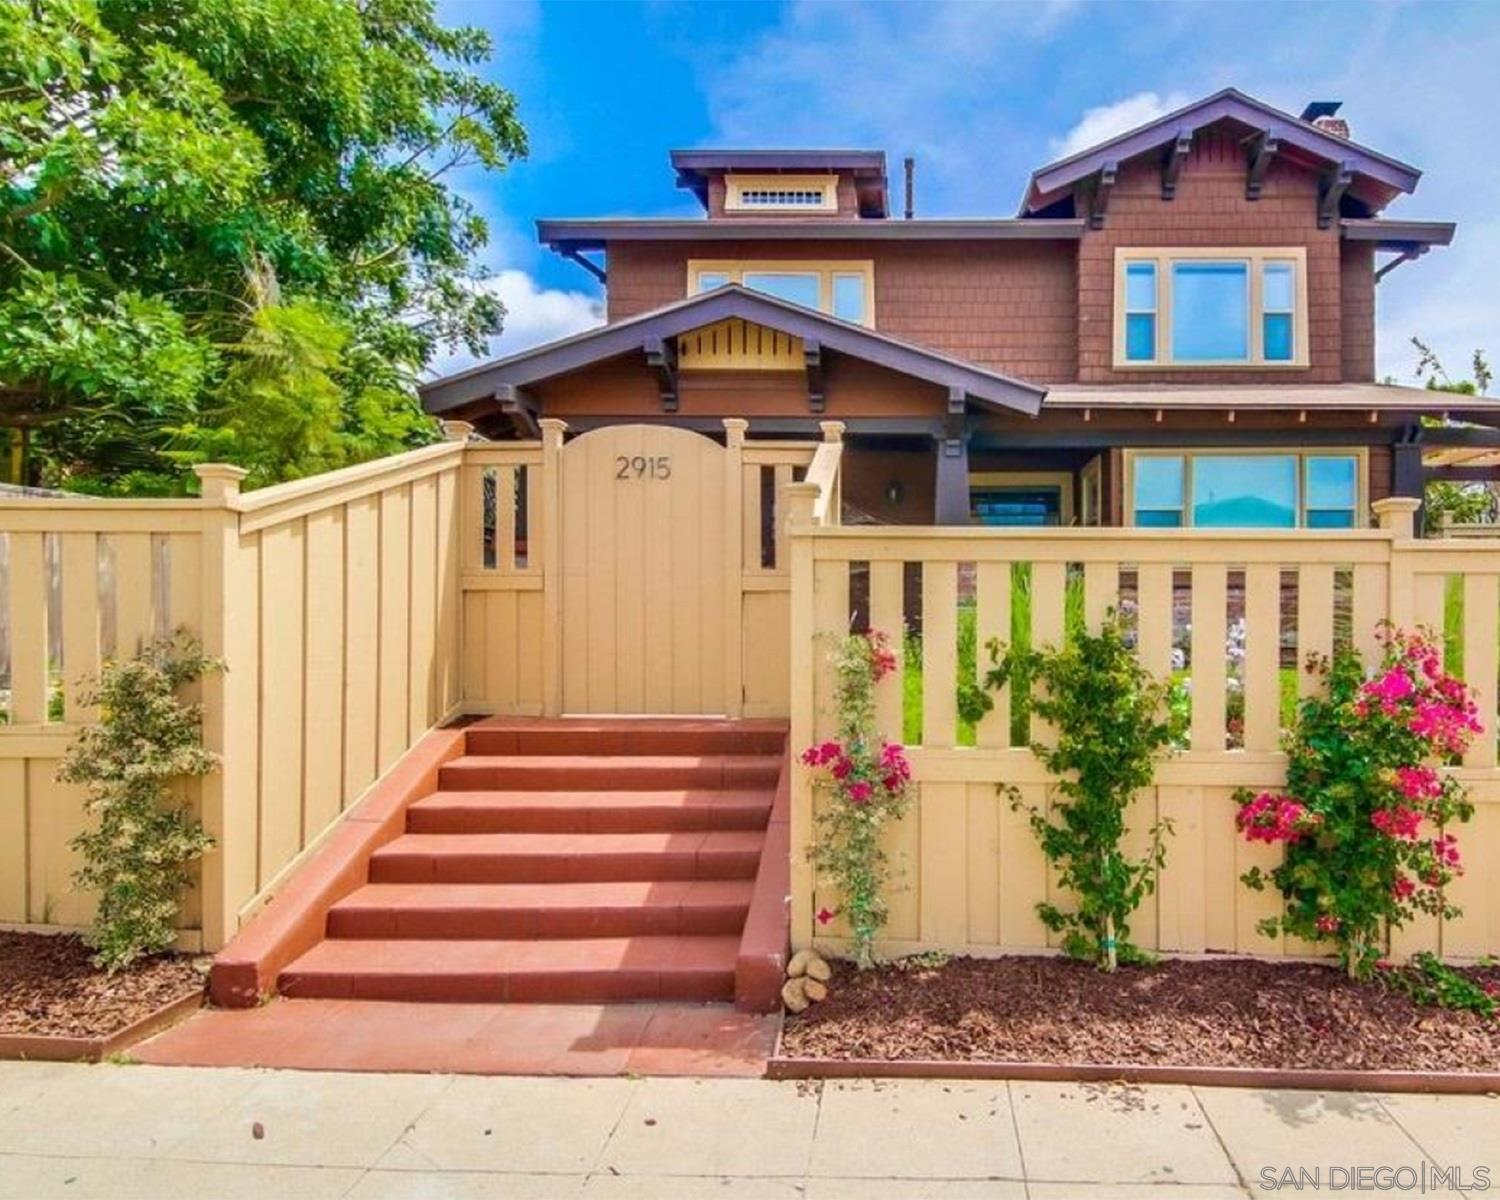 This is a fully restored 100 plus year old Craftsman with all of it's original charm.  The upstairs master bedroom is huge with multiple closet options.  A separate outside stairway offers a buyer an option to rent out upstairs and live downstairs. There is also a guest unit attached to the residence, also with it's separate entrance. Perfect for Airbnb or business owner office user  Included are upgraded kitchen, grand front porch and two new furnaces. Parking for 7 vehicles.Besides Little Italy, the next two fastest growing and most popular neighborhoods in San Diego are North Park and South Park. This property in right on the borderline of both. Giving you an amazing location for you and your family to live. McKinley Elementary, a highly rated school, is within walking distance. This property has alley access with three parking spaces and two car charging options. Owner is currently in the process of getting the home Mills Acted which will reduce property taxes substantially. Owner has created three separate living units, if desired. Perfect for an Airbnb operator. This is a fully restored 100 plus year old Craftsman with all of it's original charm. Includes an original craftsman built in hutch in the dining room. The upstairs master bedroom is huge with many closet options.  A separate outside stairway offers a buyer an option to rent out upstairs and live downstairs. There is also a guest unit attached to the residence, also with it's separate entrance.  Included are upgraded kitchen, grand front porch, new roof and two new furnaces.